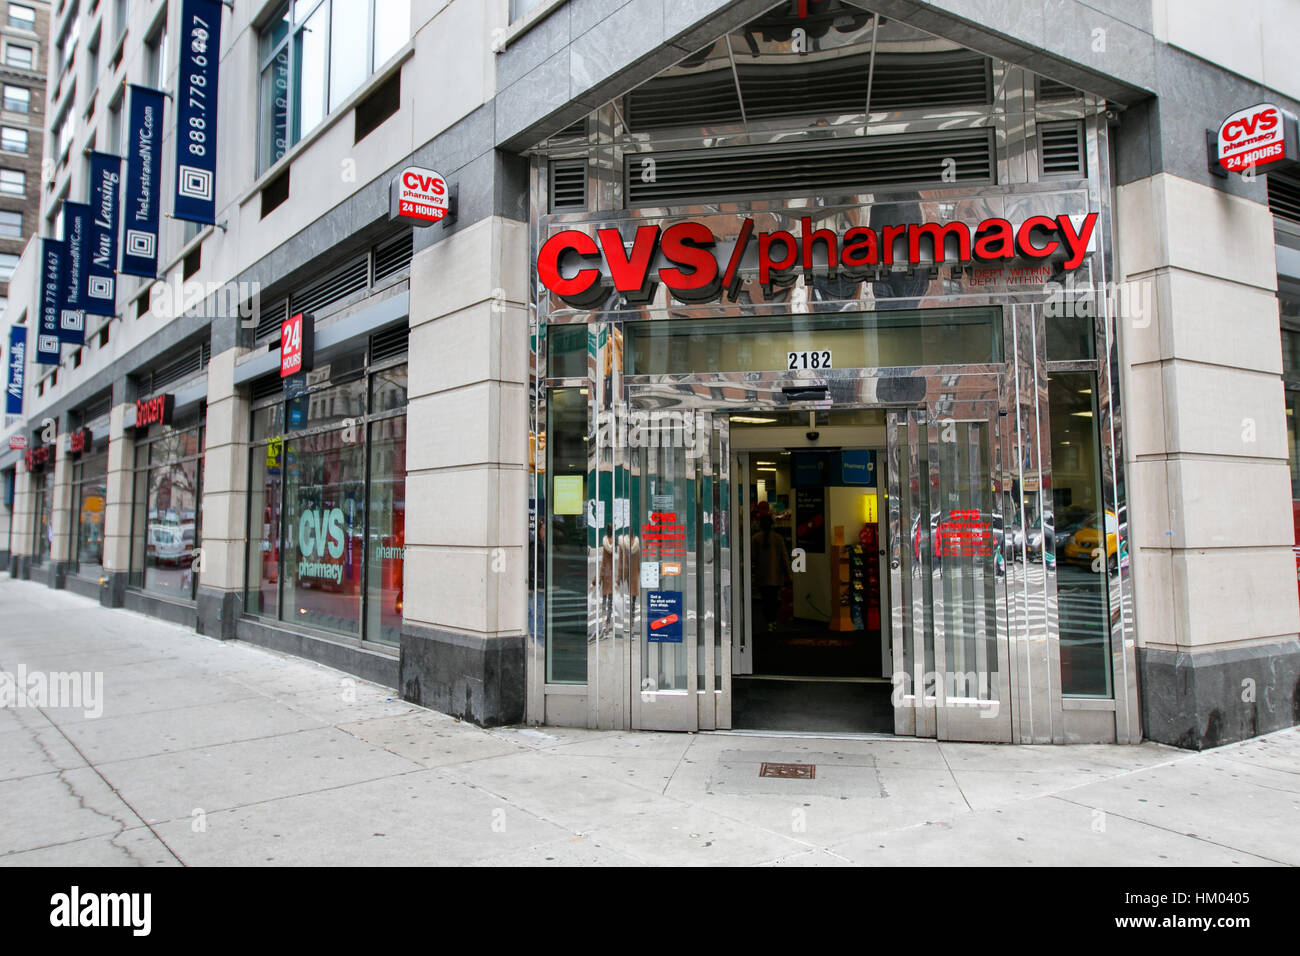 Cvs Pharmacy Stock Photos & Cvs Pharmacy Stock Images - Alamy